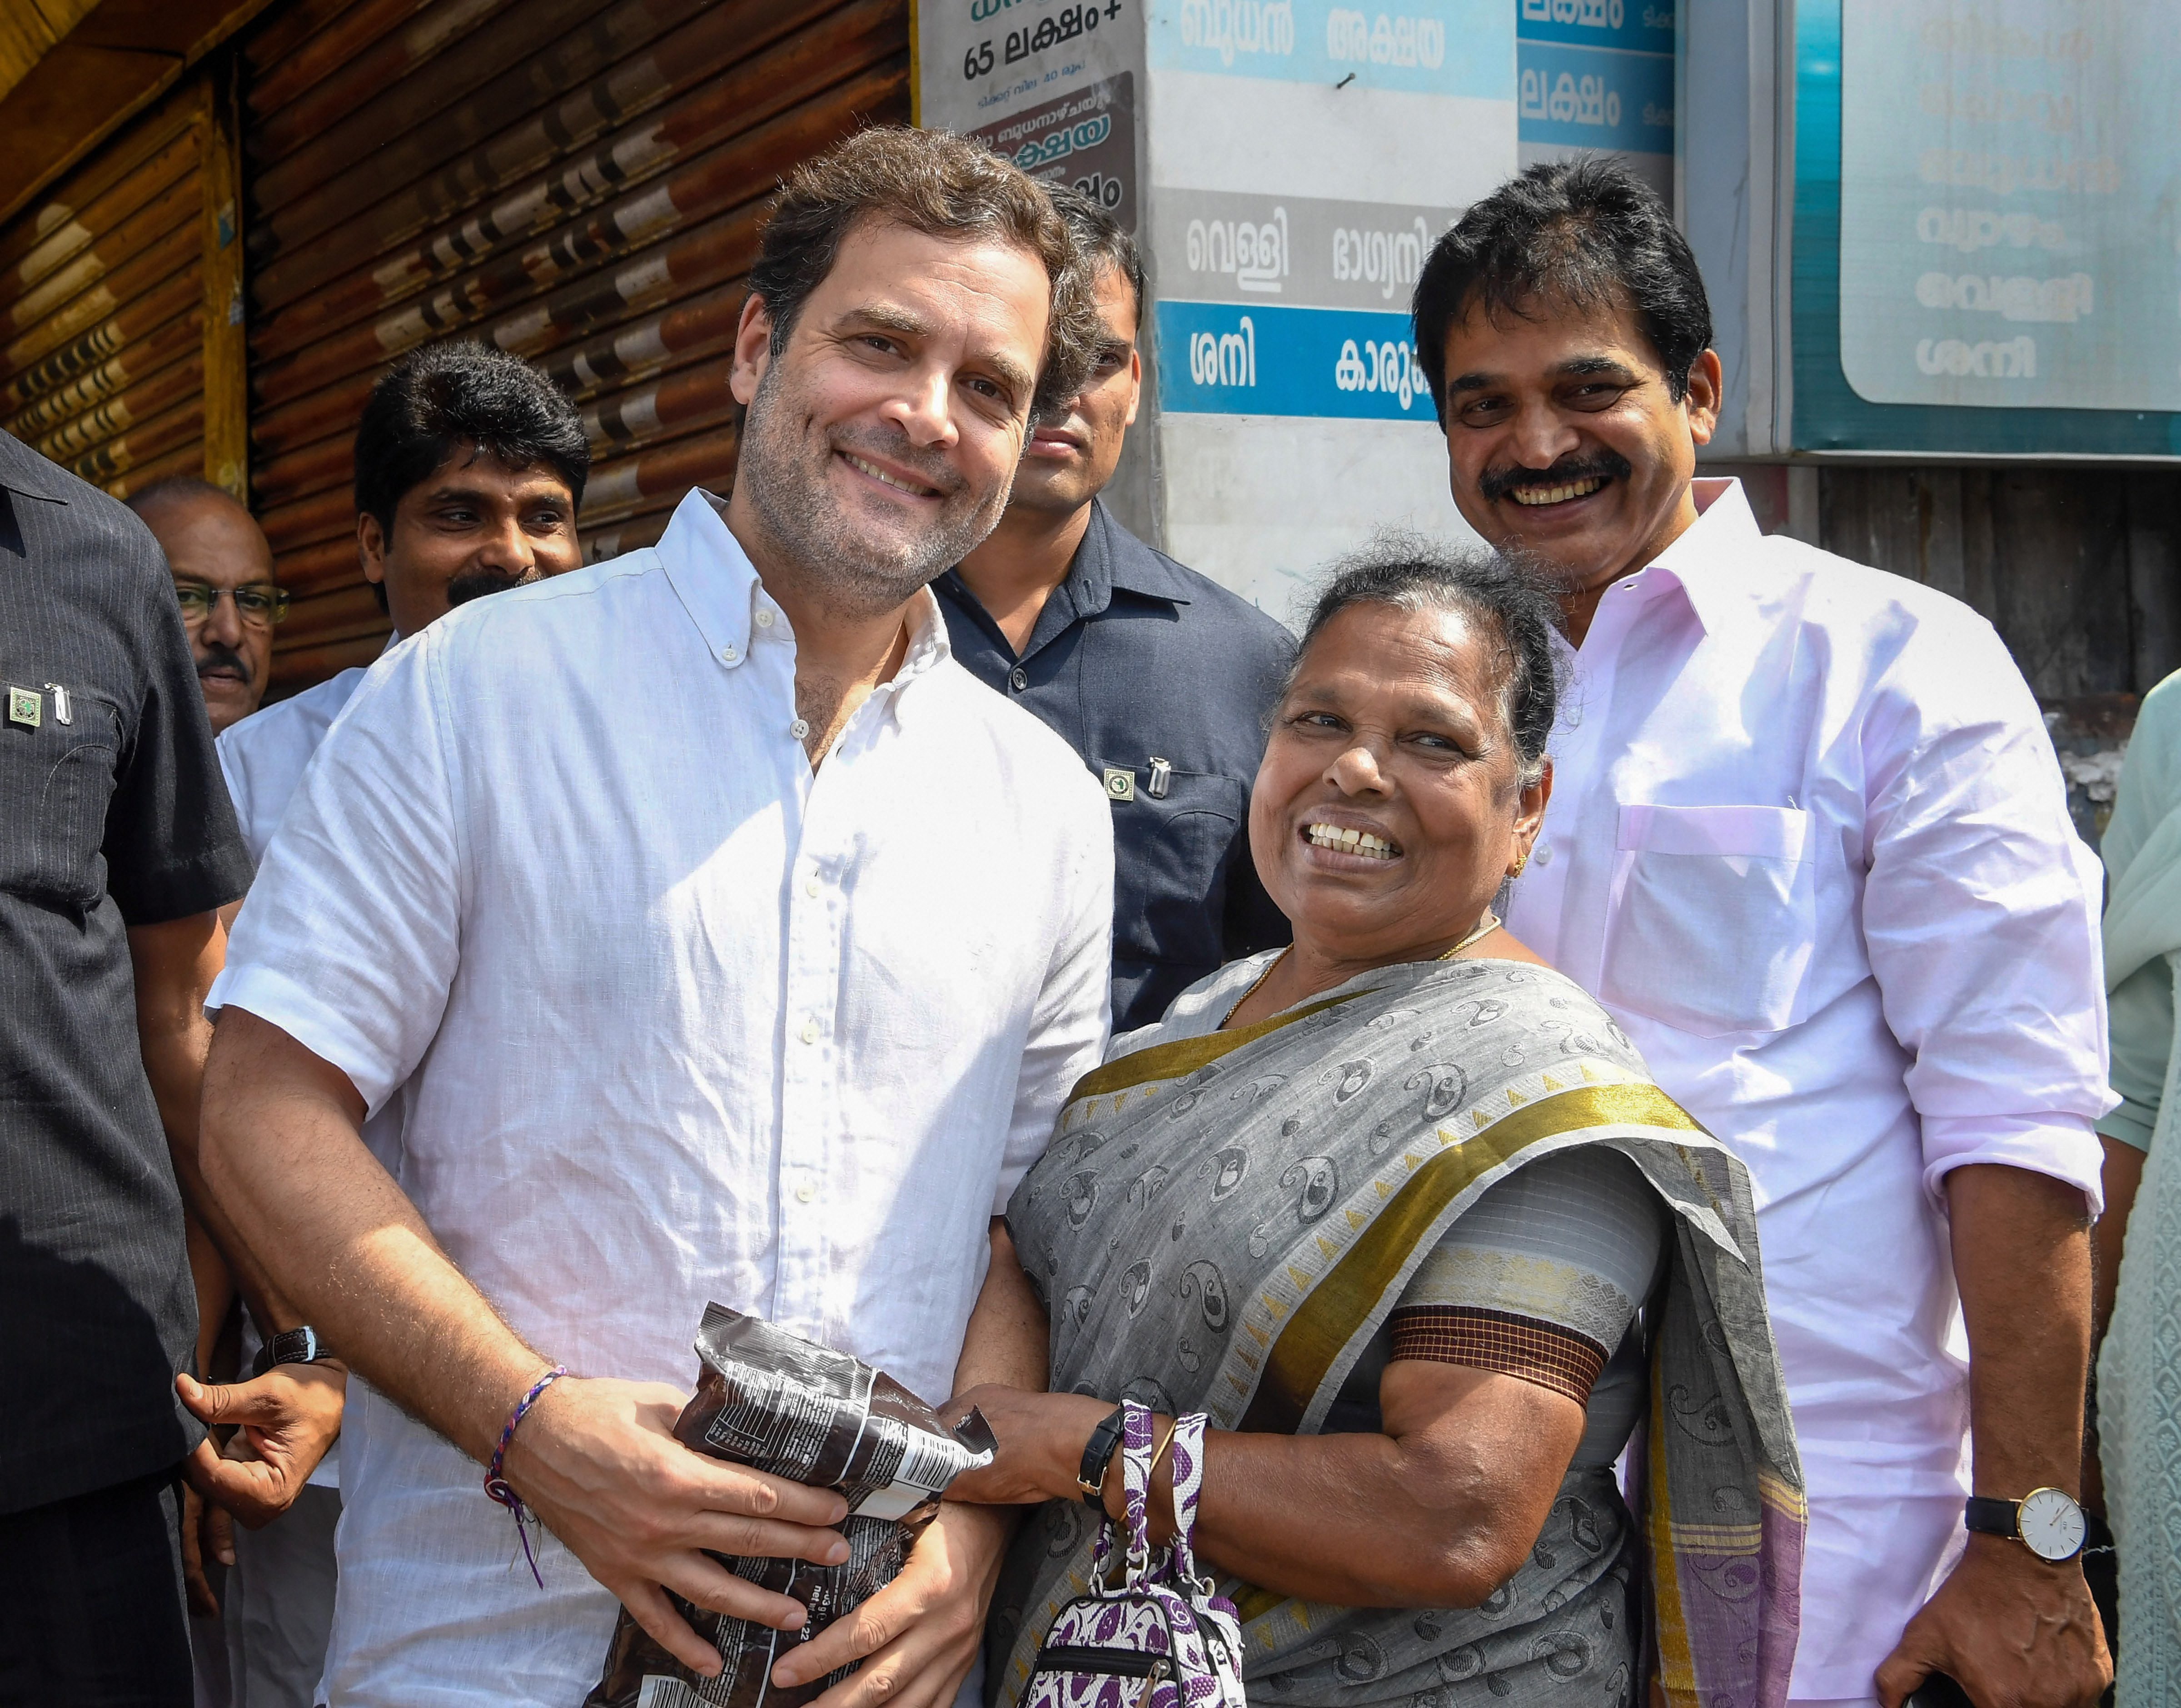 Congress leader and local MP Rahul Gandhi interacts with a woman during a visit to his parliamentary constituency of Wayanad, Kerala, on Friday, October 4, 2019.